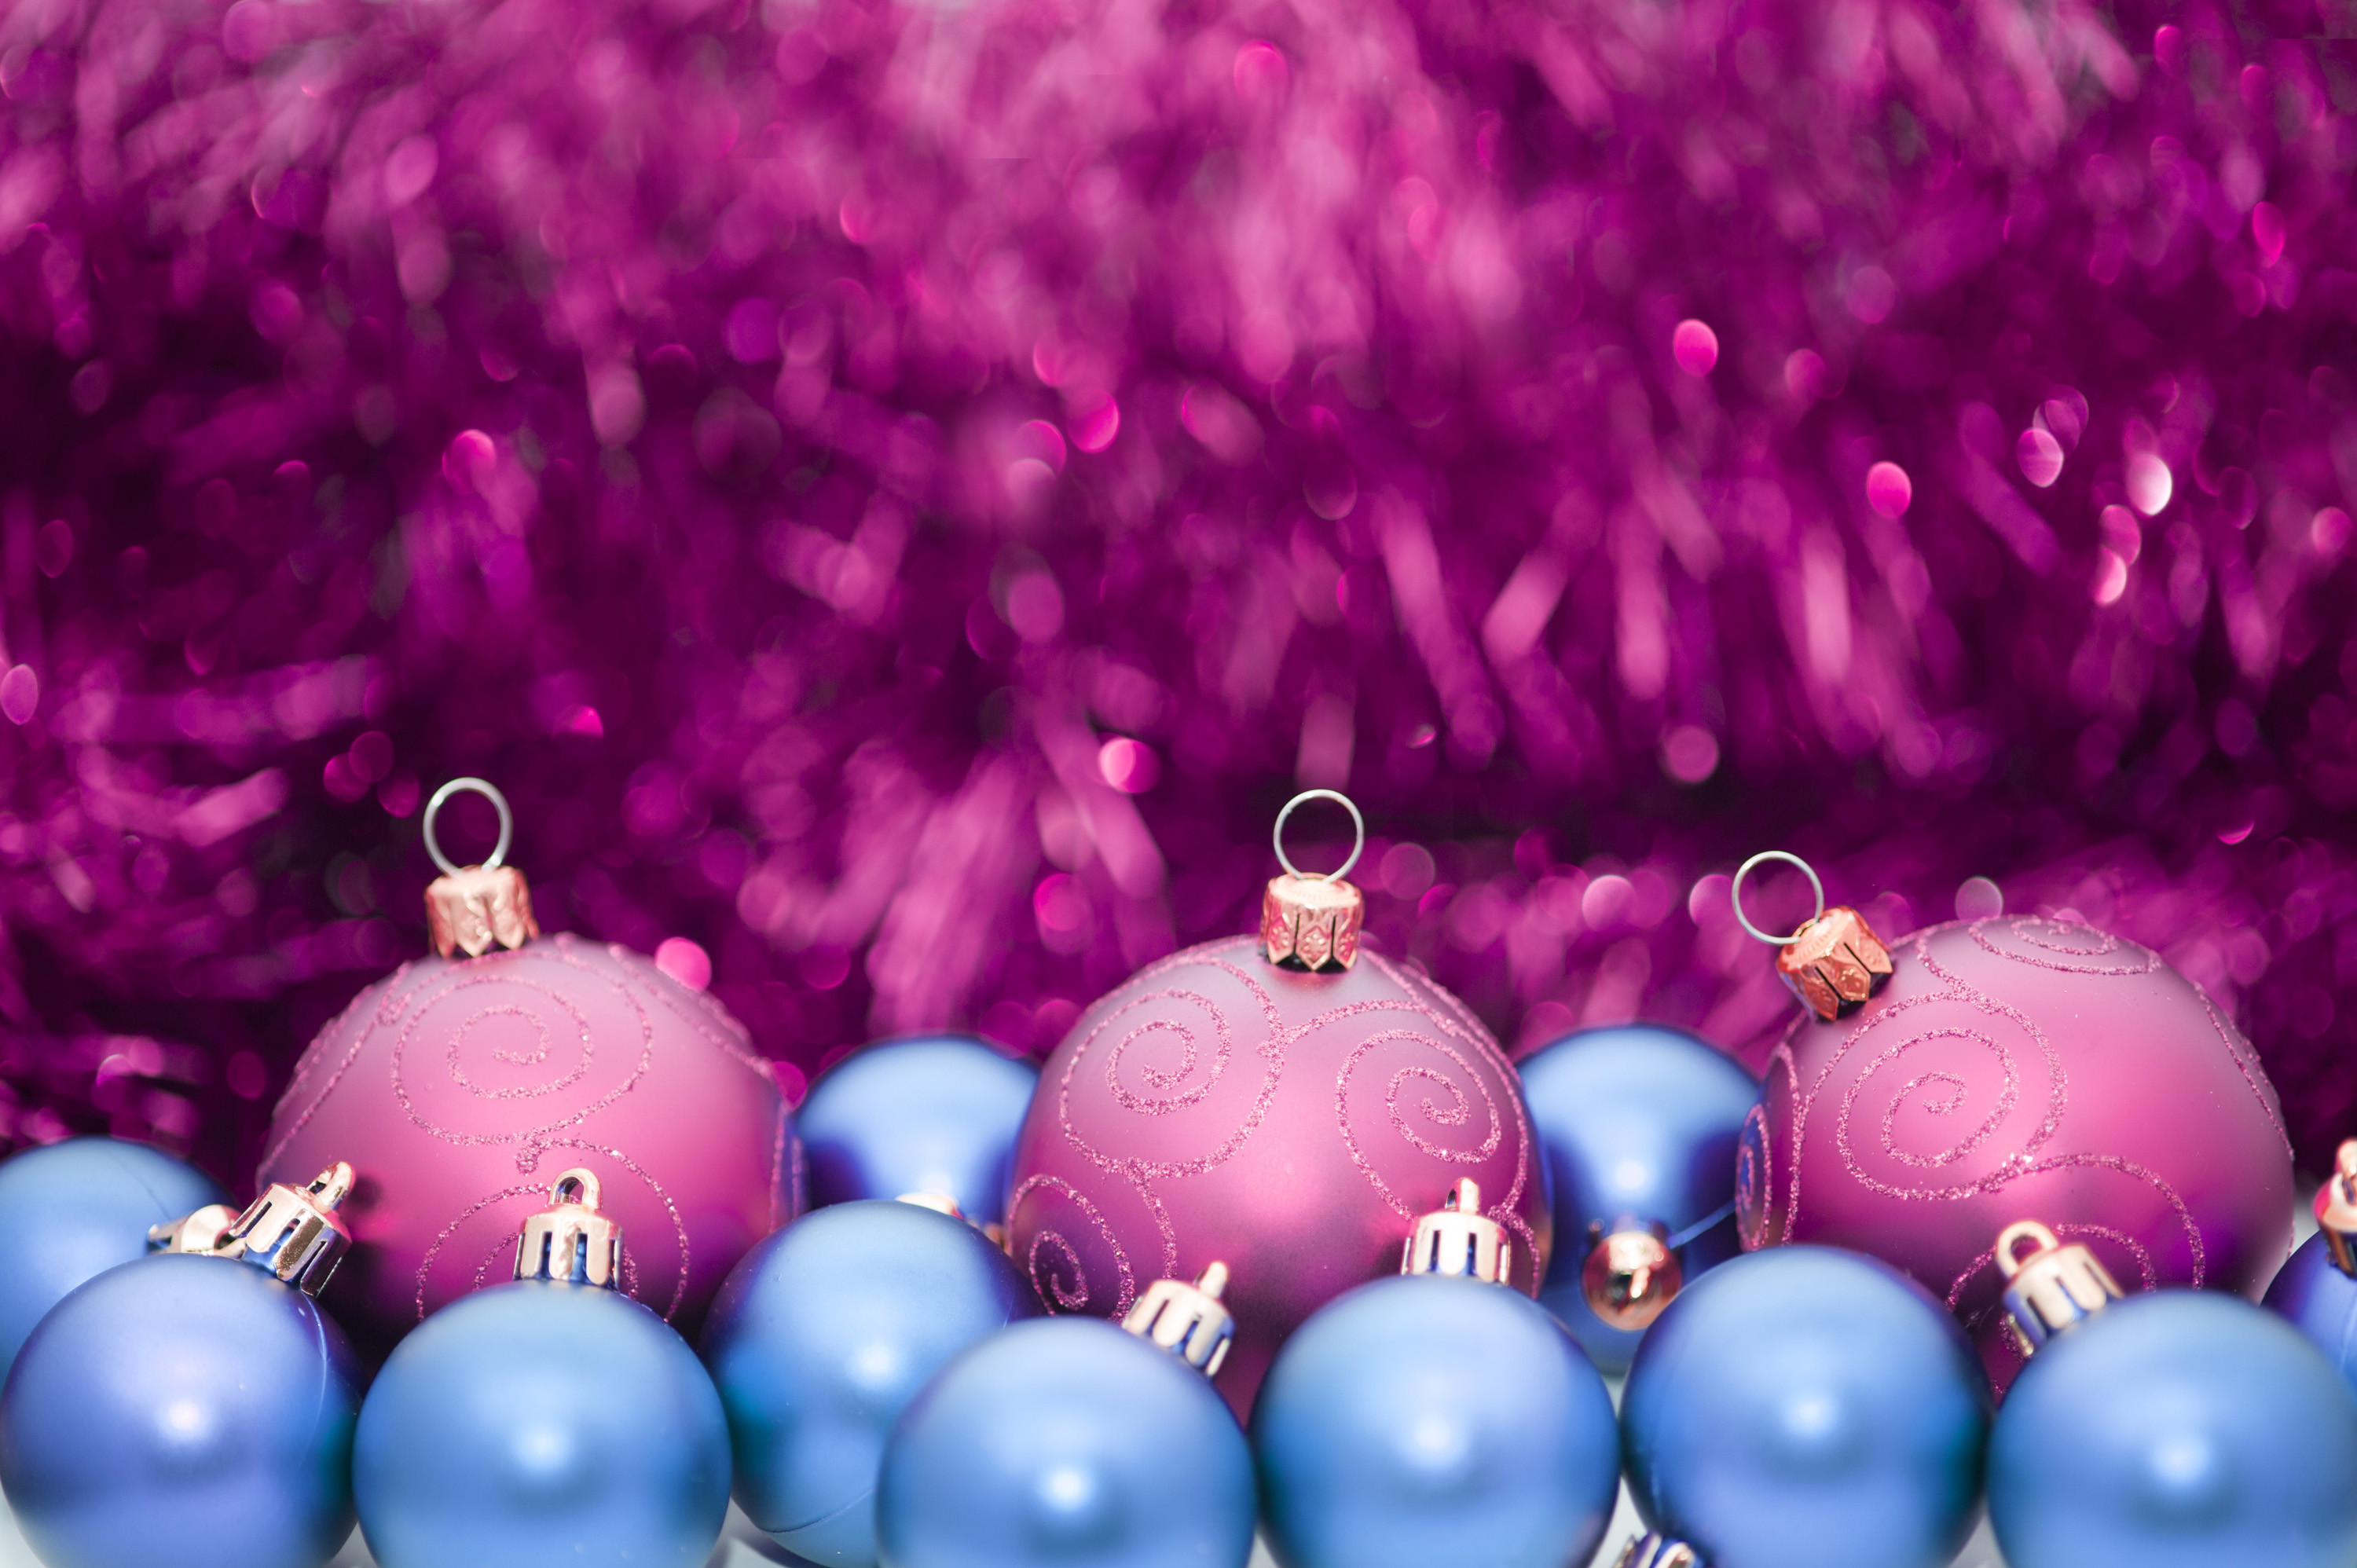 purple and blue baubles with an out of focus sparkling tinsel background